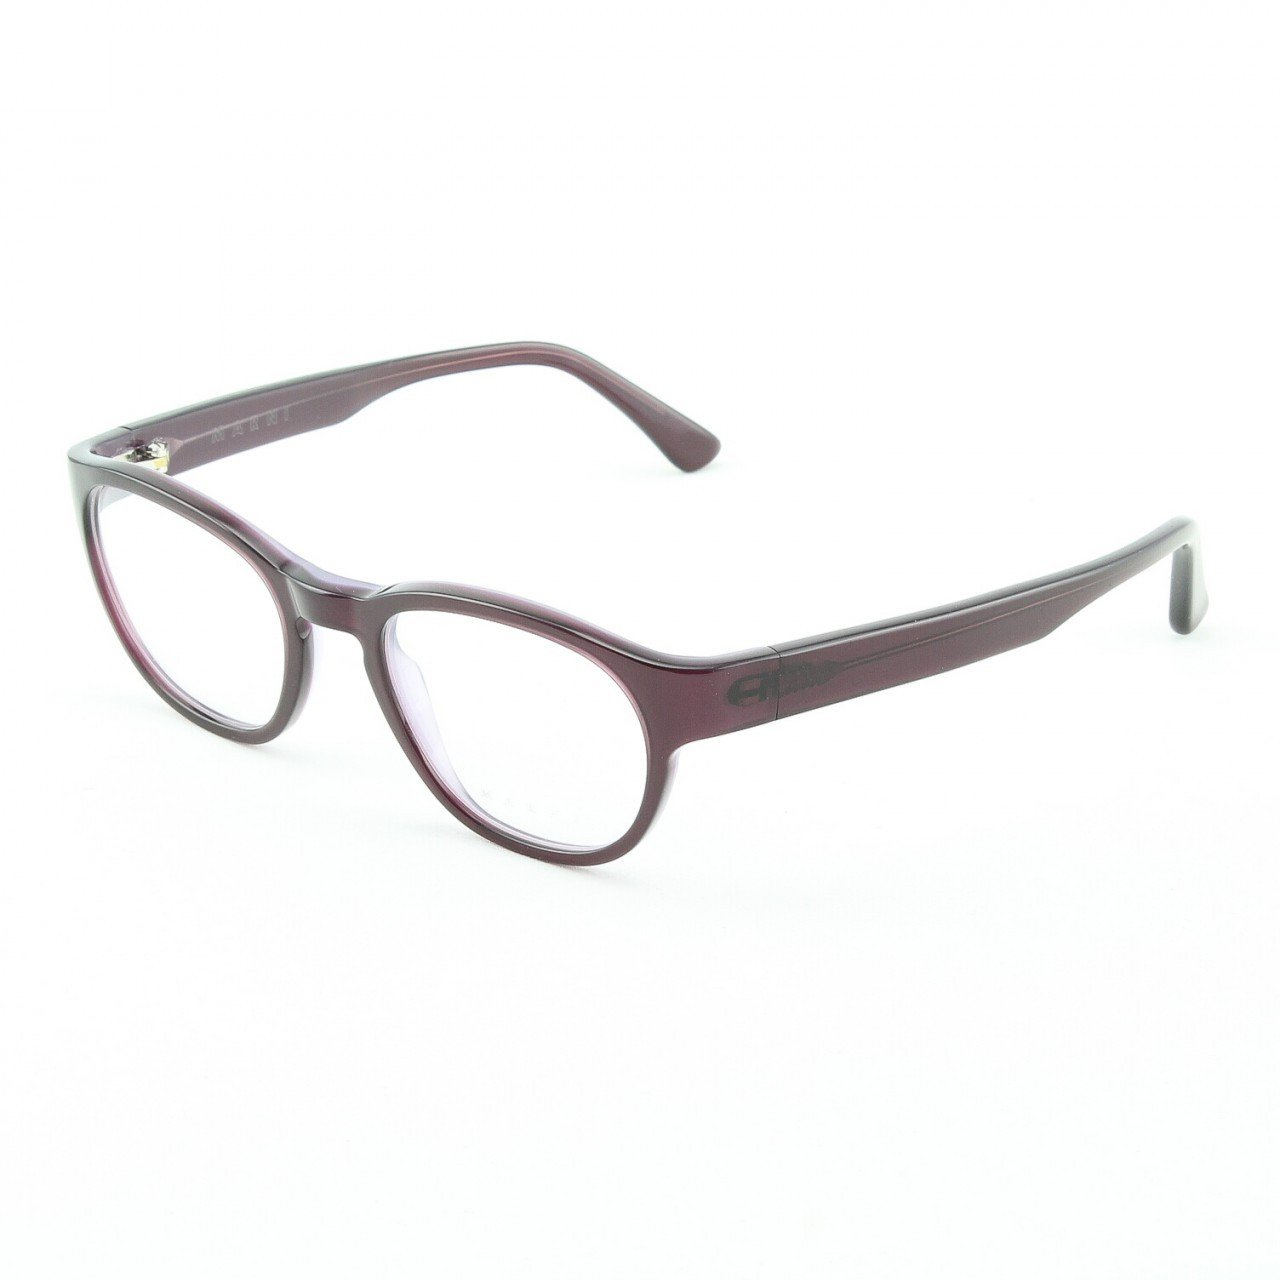 Marni MA630S Eyeglasses Col. 46 Deep Plum Translucent Frame with Clear Lenses